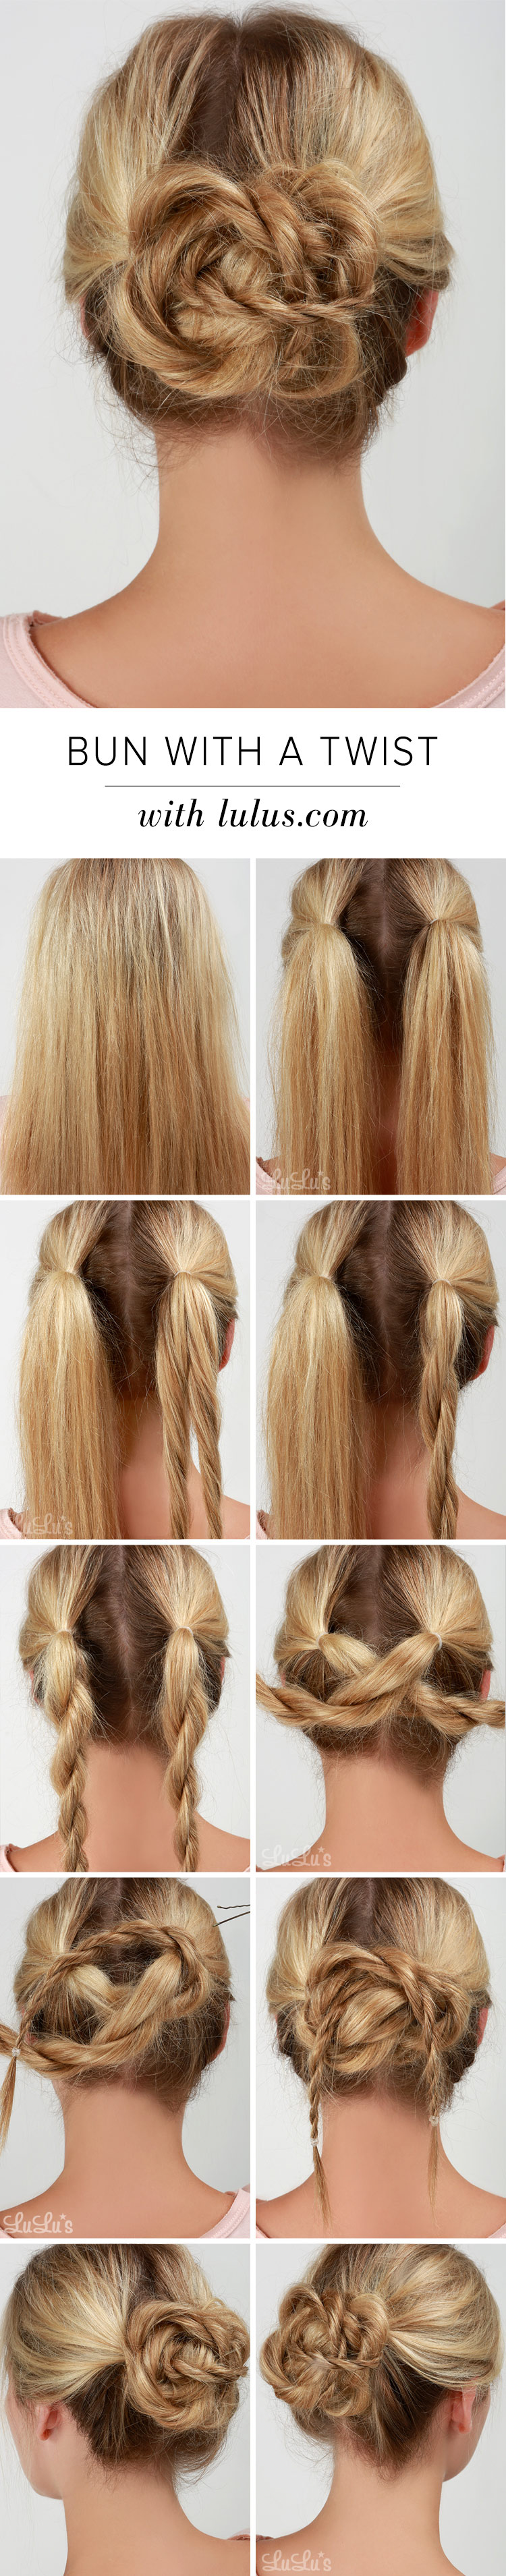 how to make a bun with just an elastic